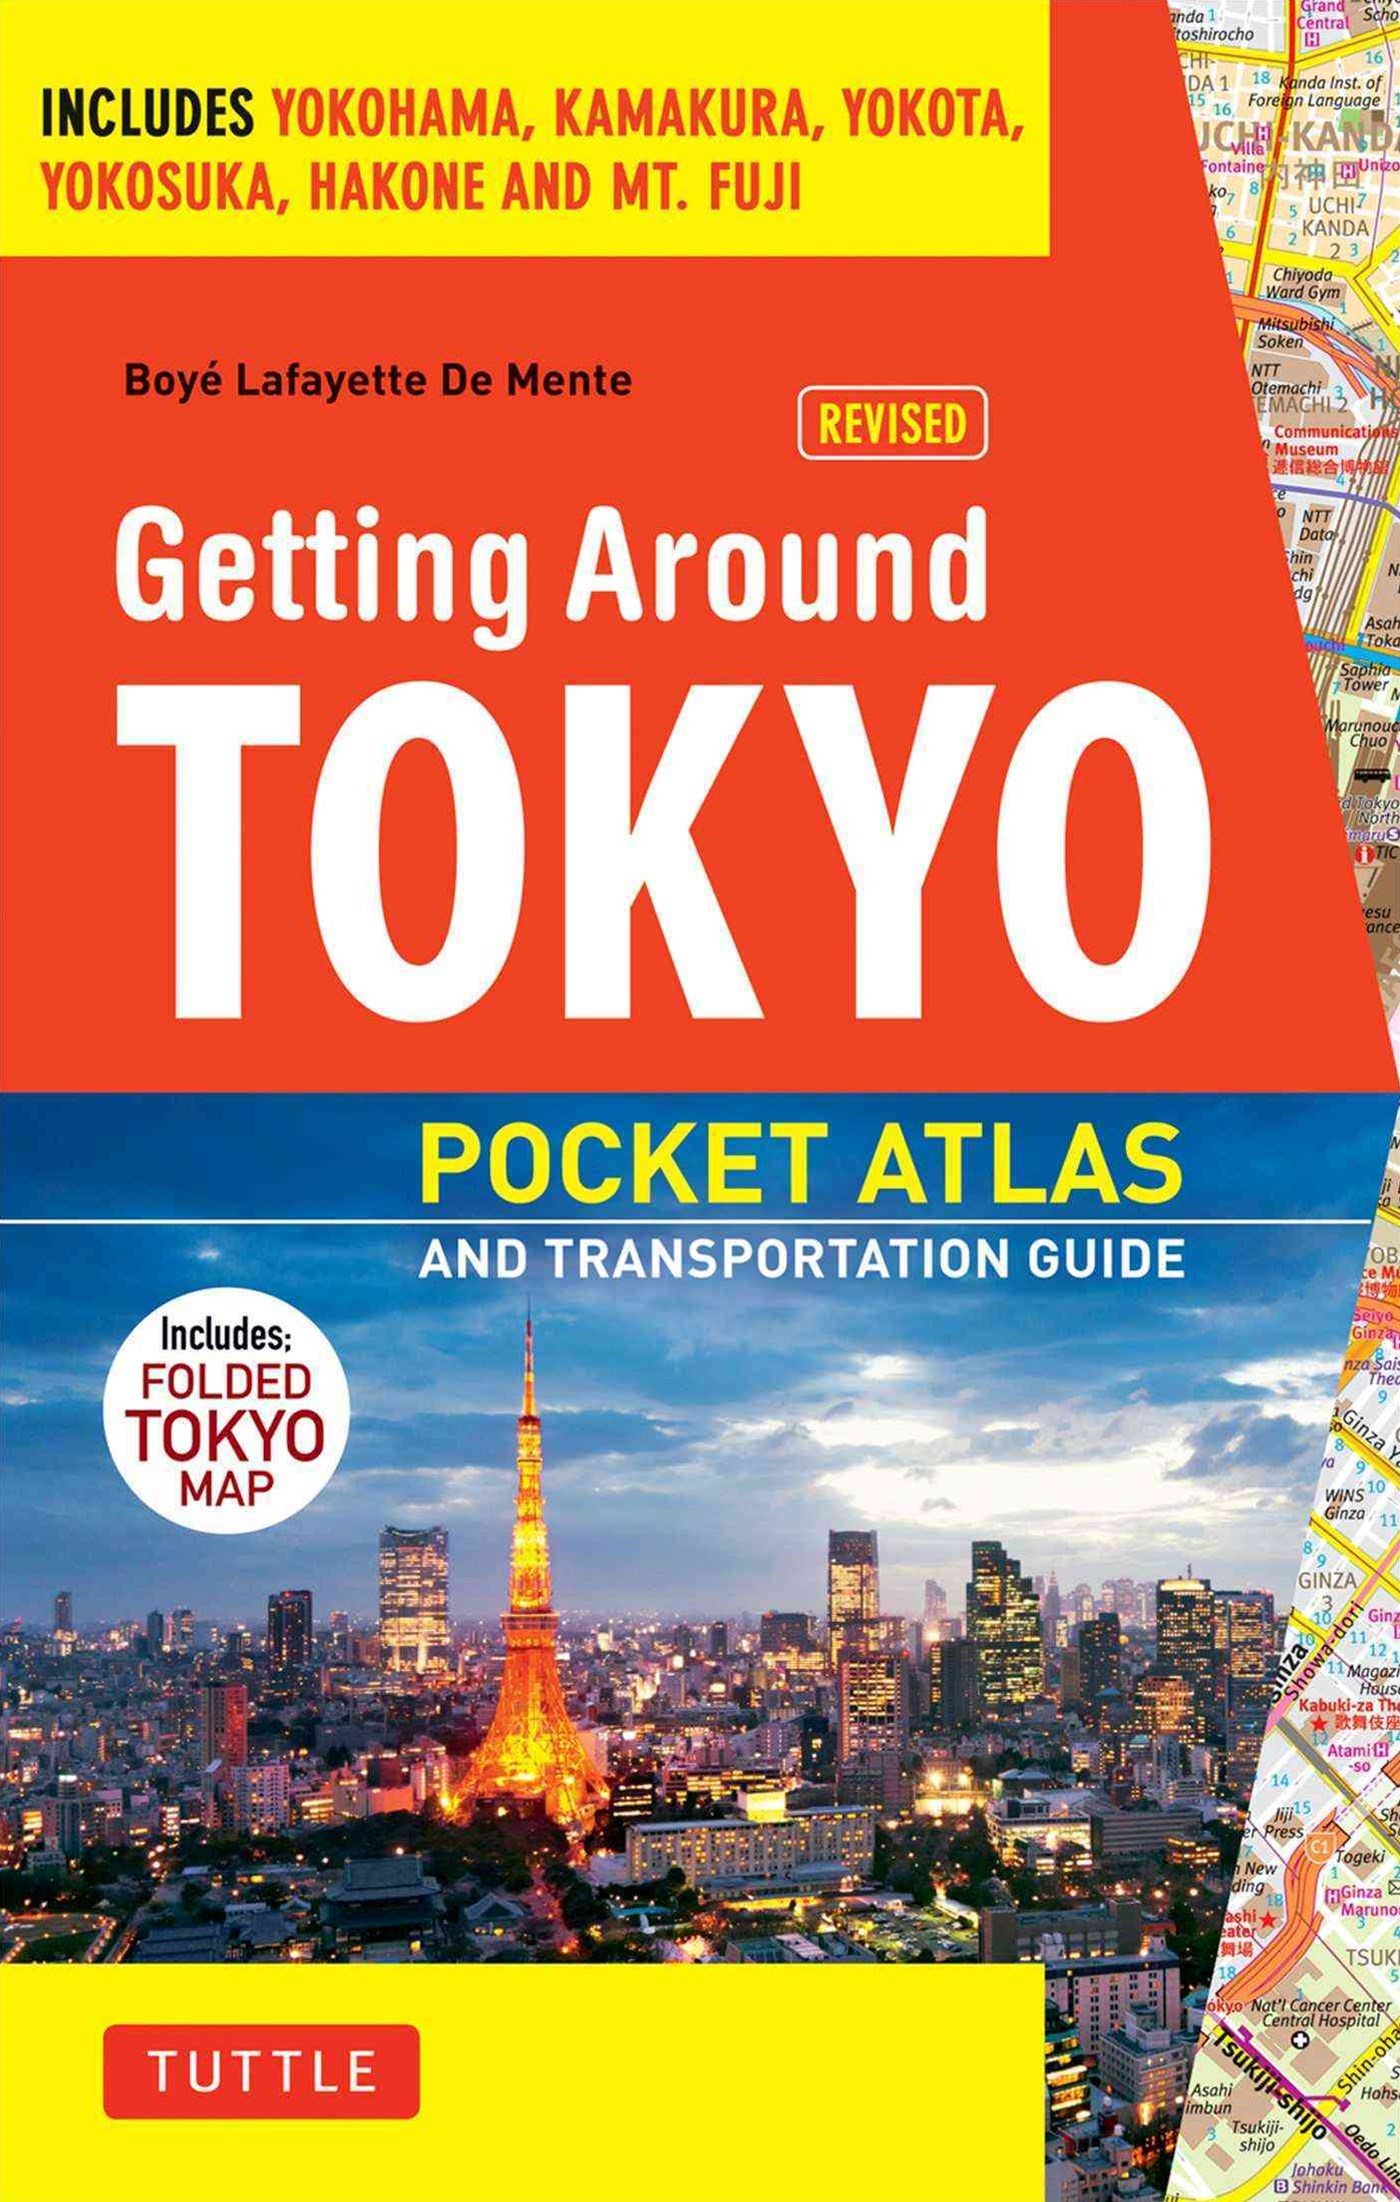 Tokyo Pocket Atlas and Transportation Guide